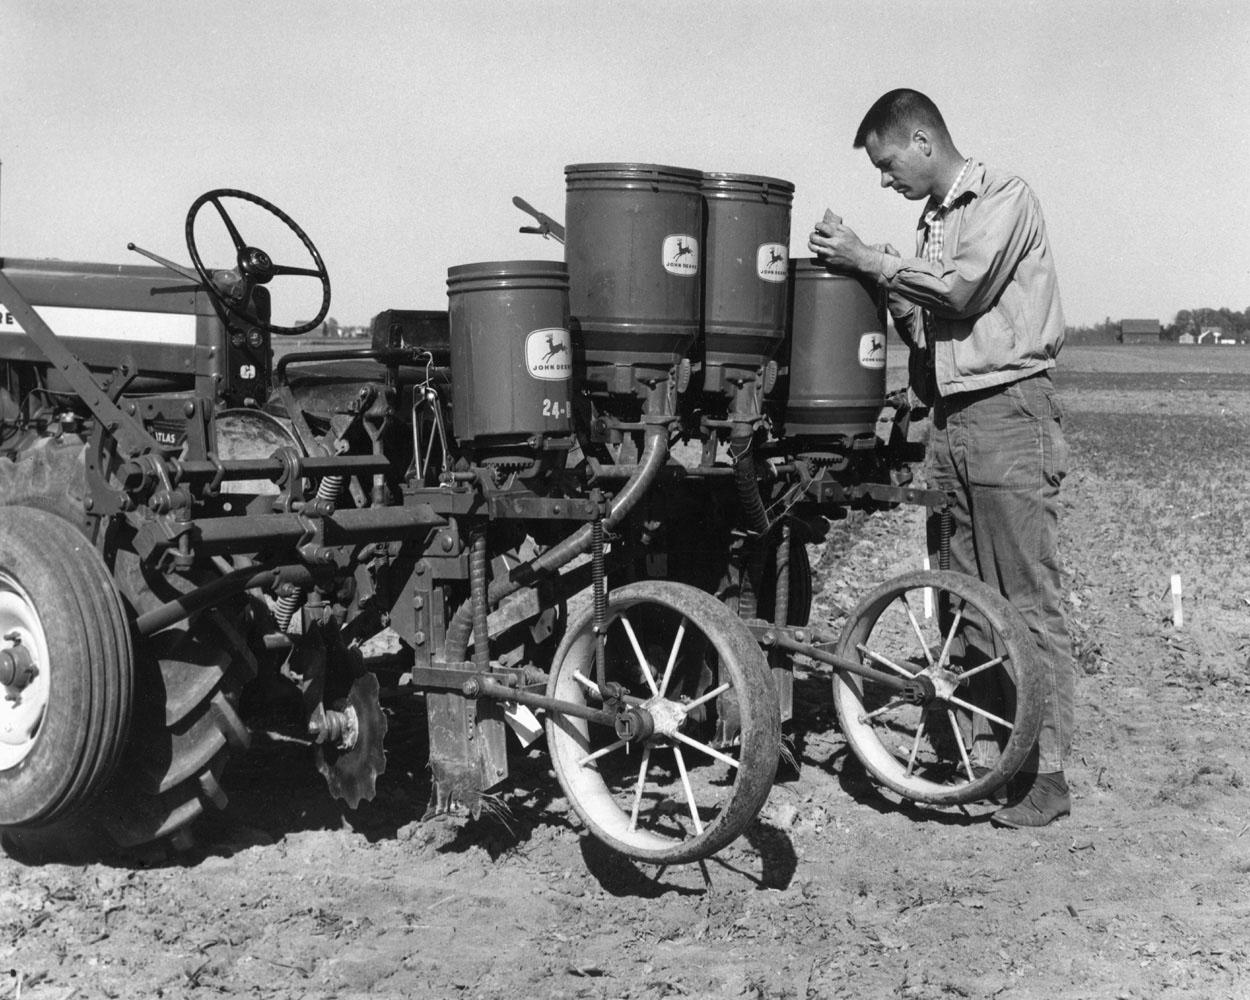 In 1964, agronomist Glover Triplett was conducting pioneering research in no-till farming at Ohio State University. (Submitted Photo)